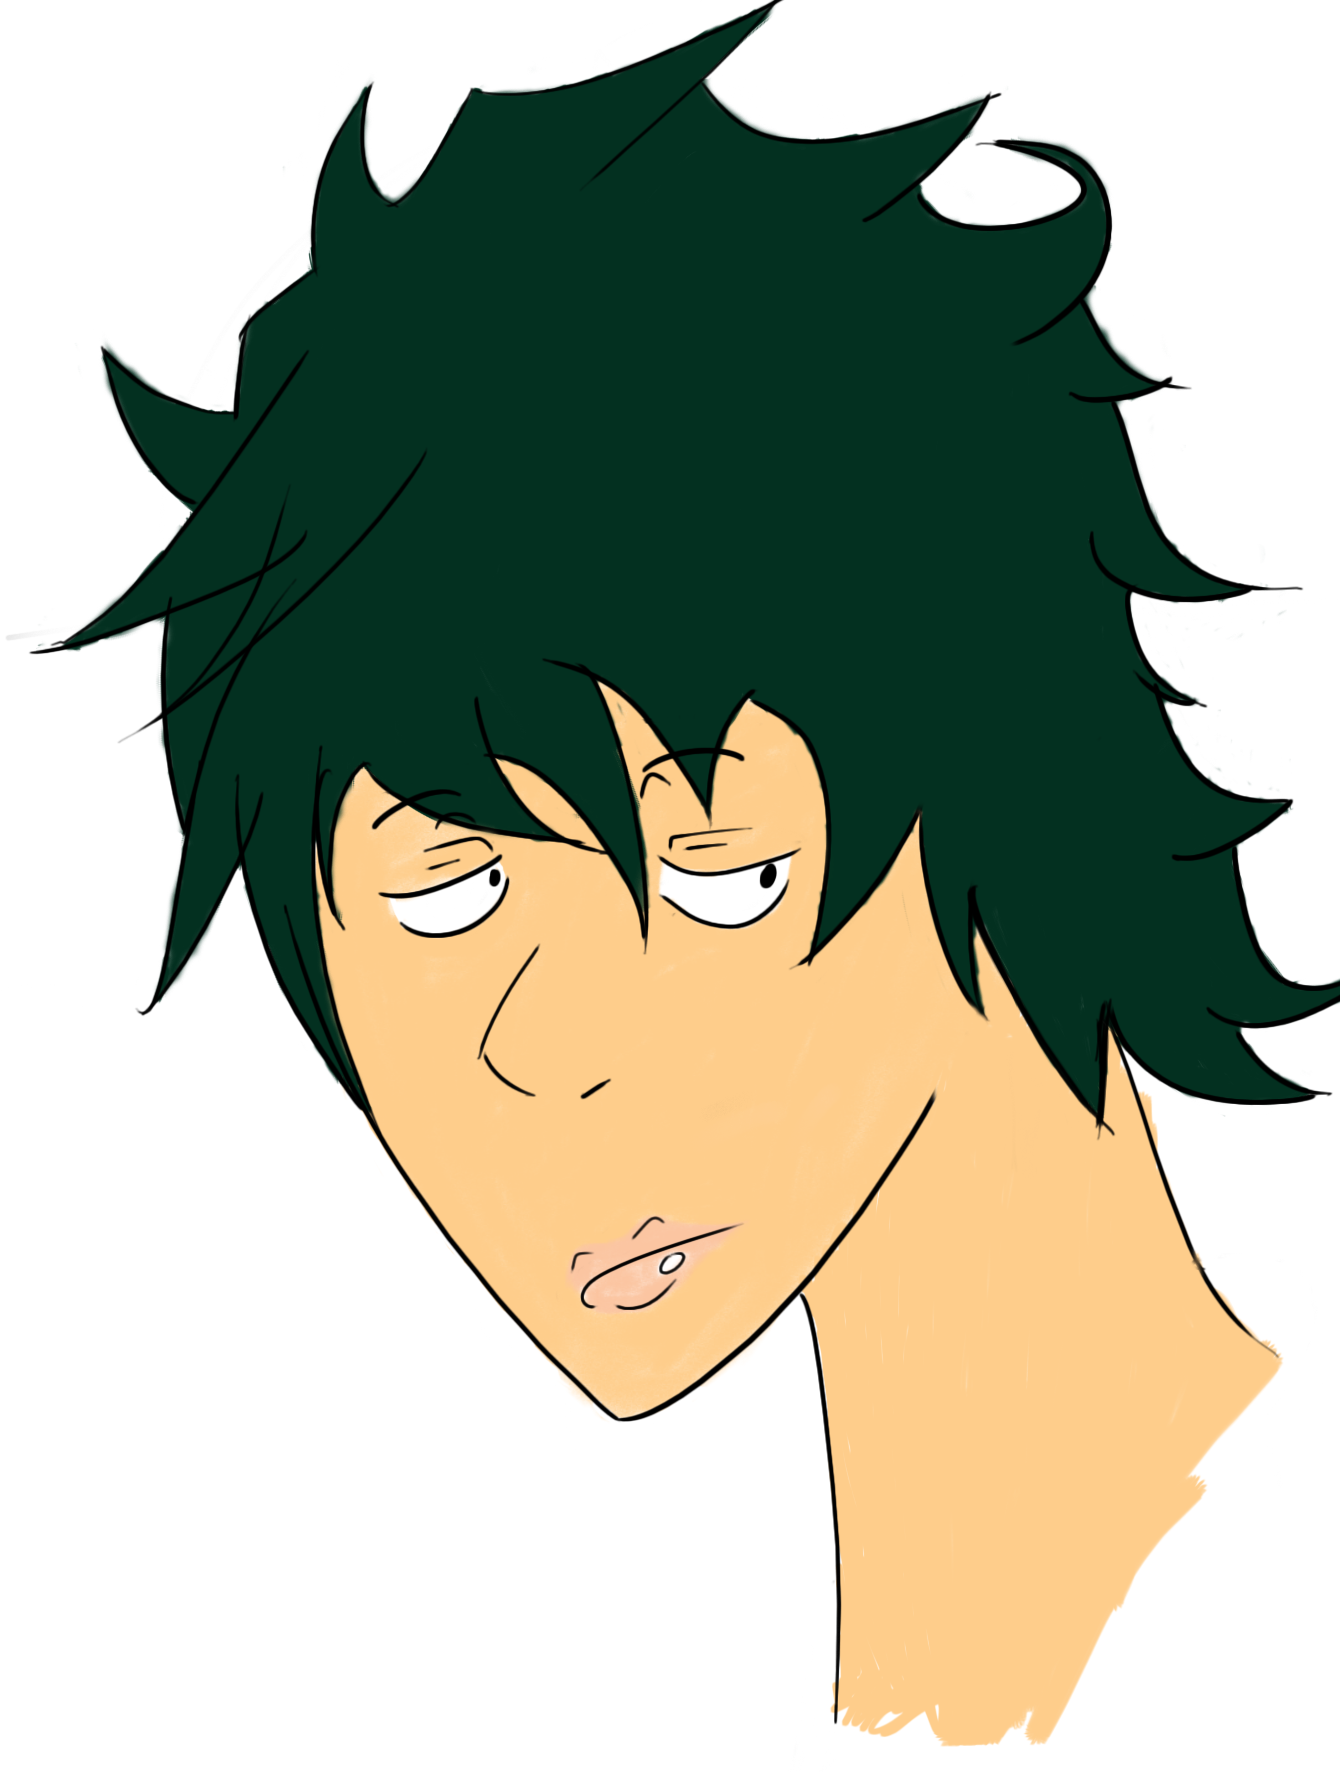 a face I drew why is hair so hard to draw?